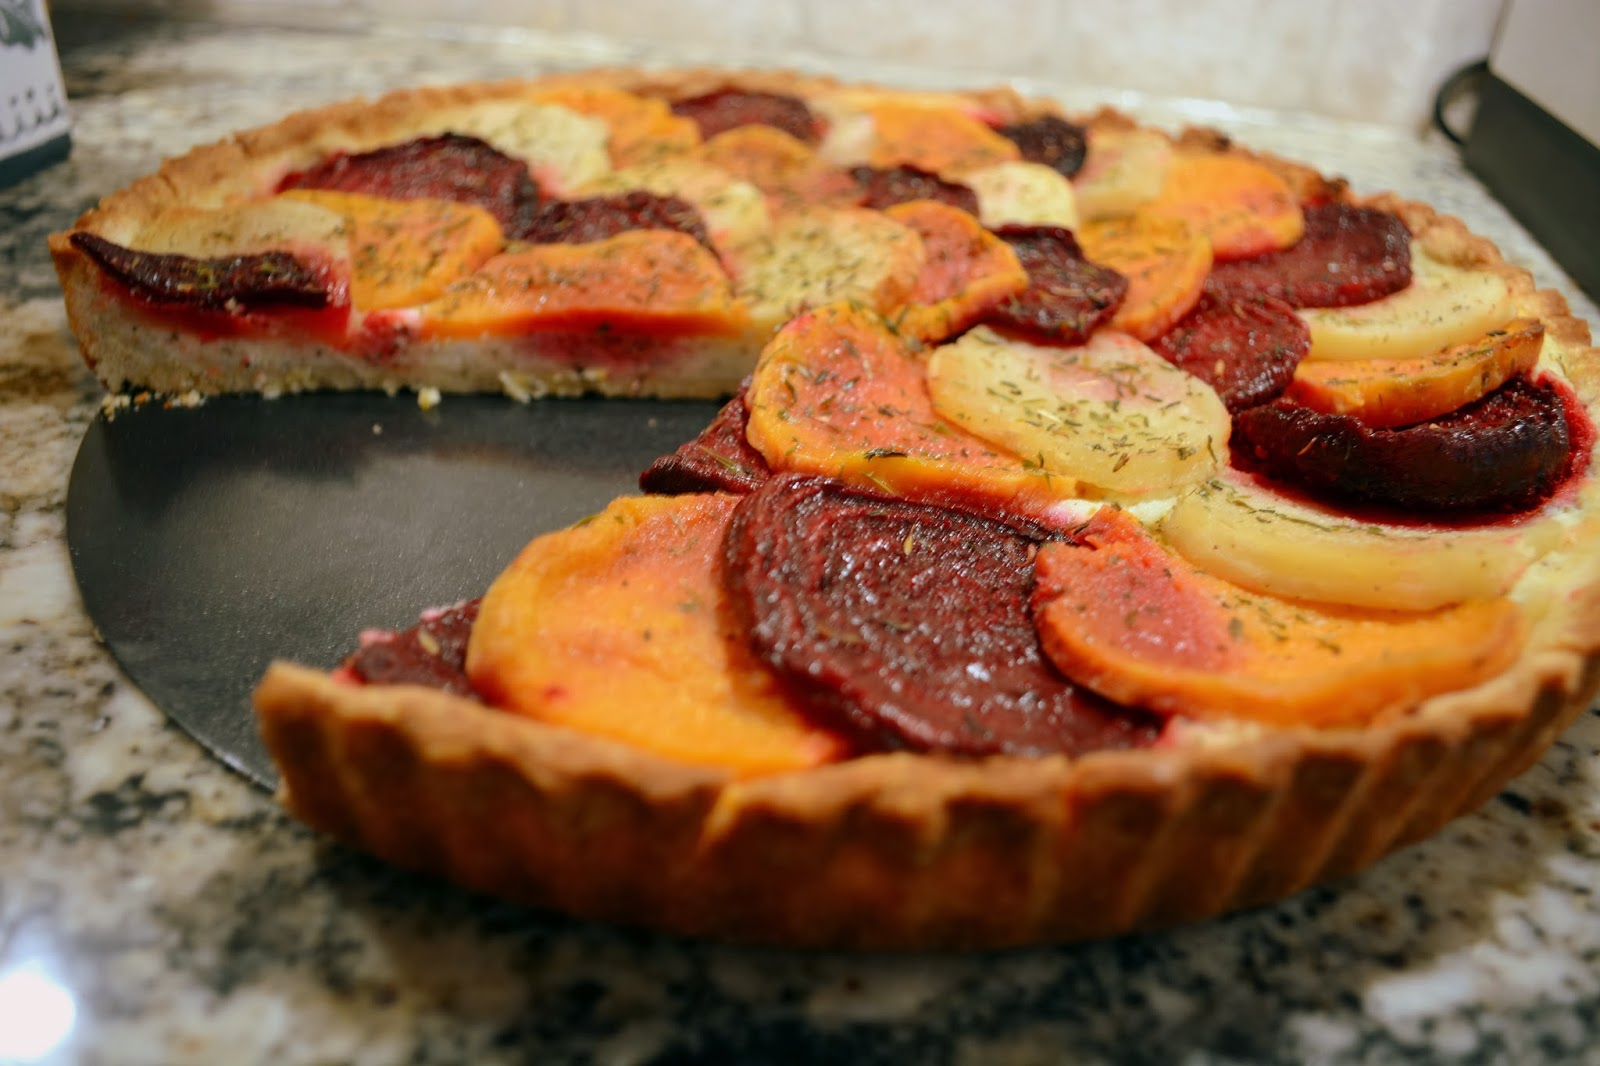 ... Fiori Favoriti: A Savory Roasted Root Vegetable and Goat Cheese Tart